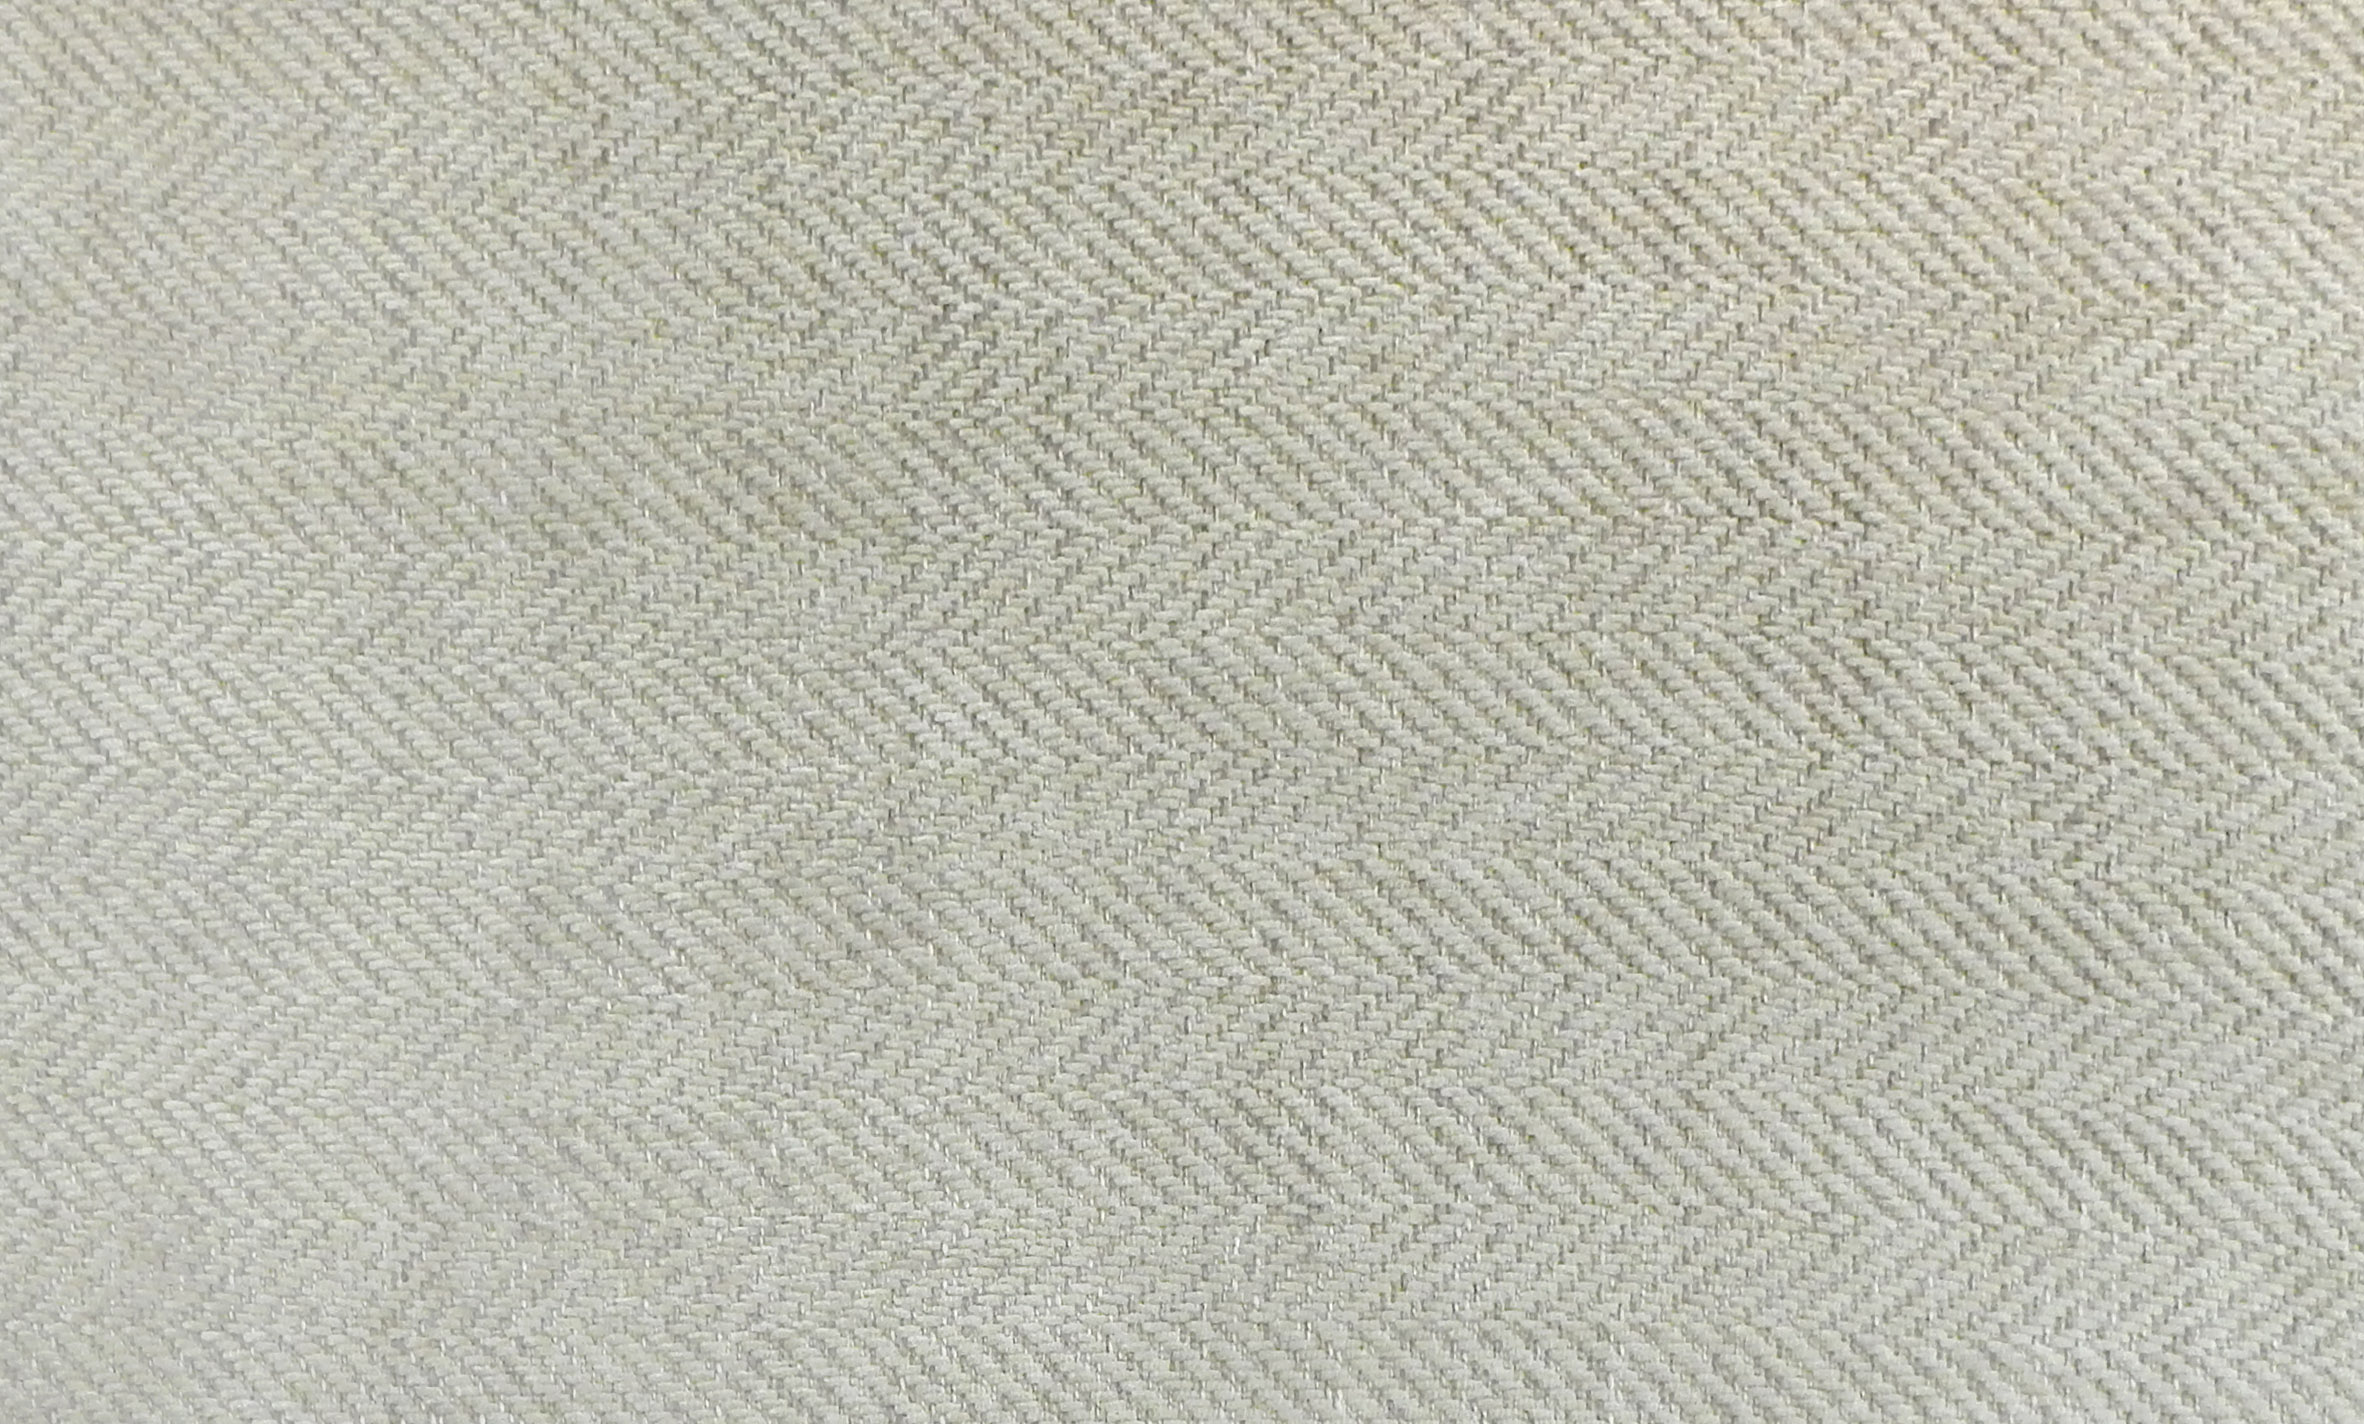 Free Photo Fabric Texture Surface Texture Gray Free